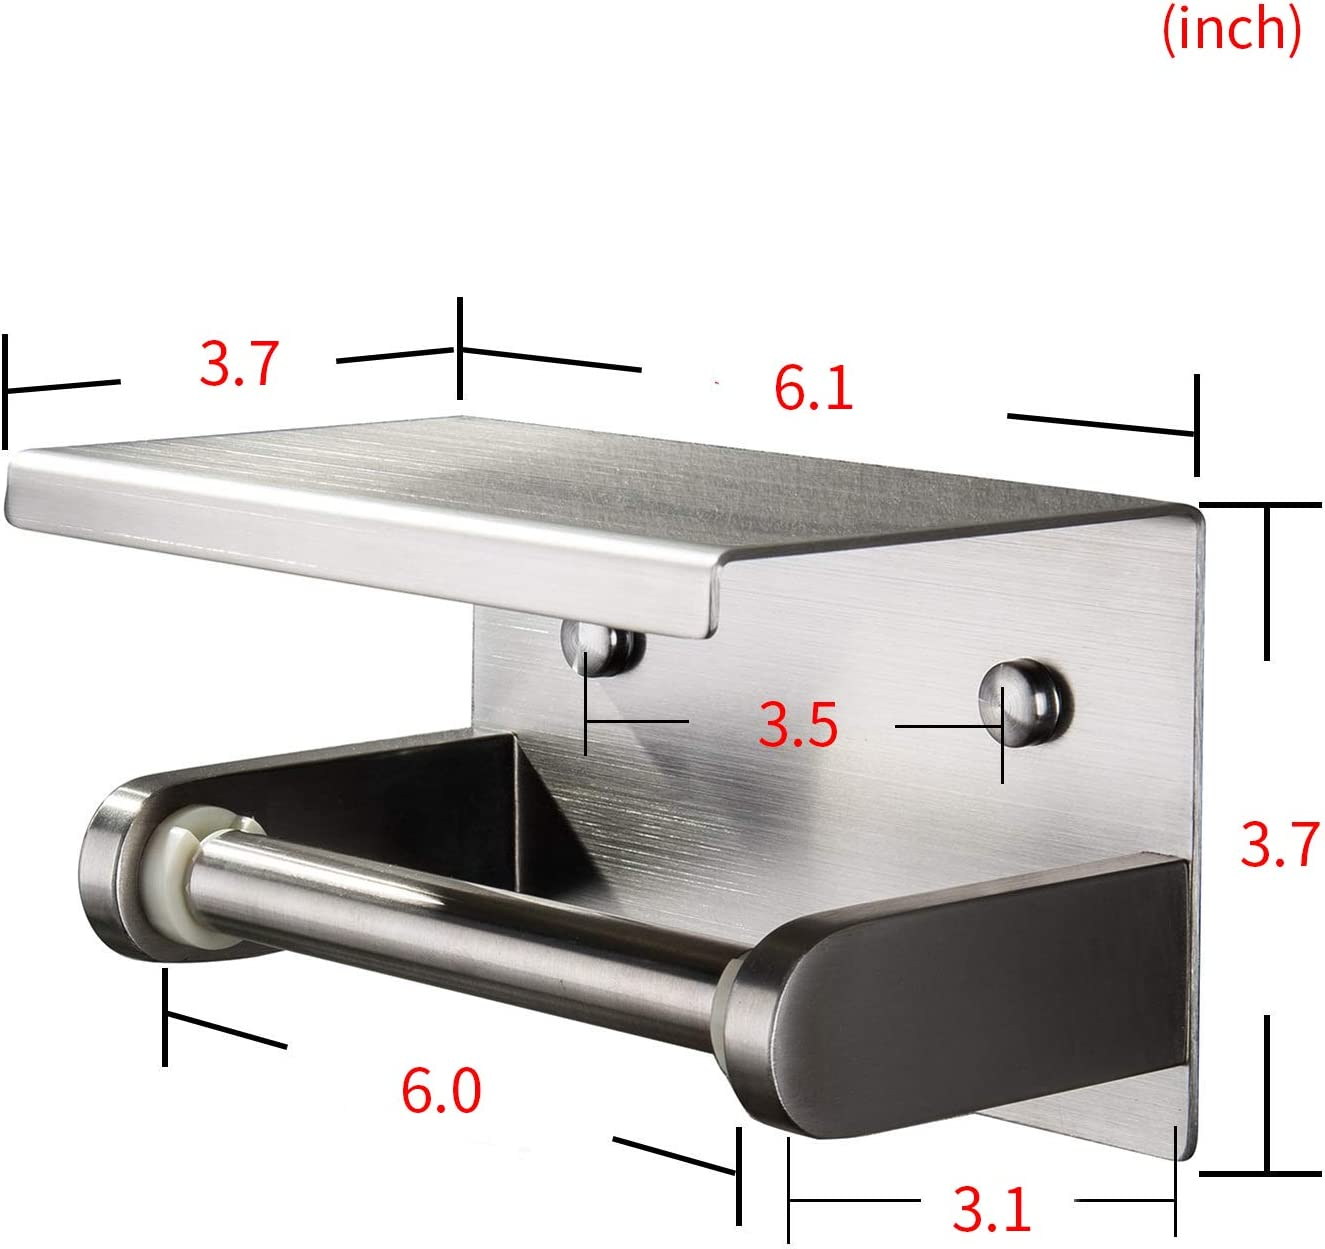 YIGII Toilet Paper Holder with Shelf Stainless Steel Toilet Roll Holder Self Adhesive or Wall Mounted for Bathroom